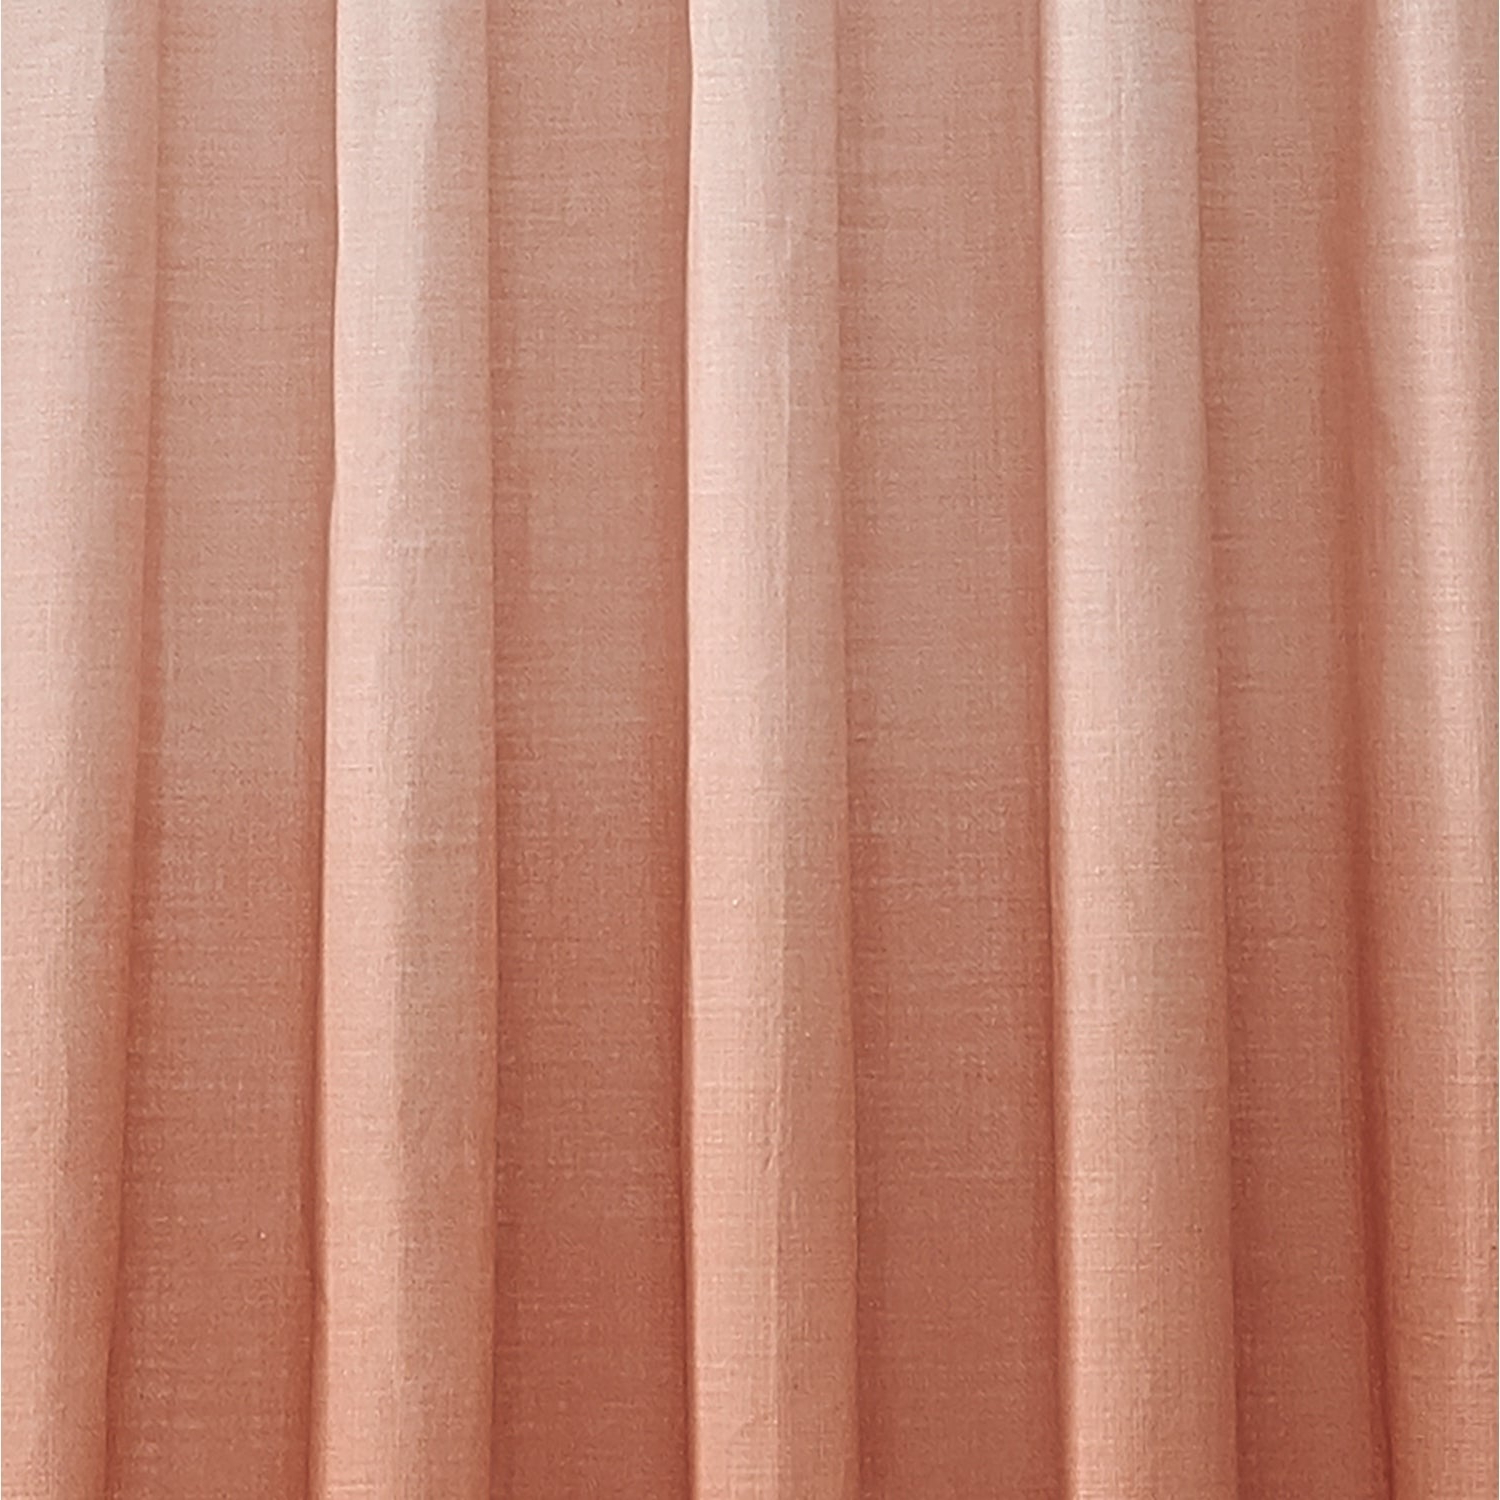 Most Recent Vue Signature Arashi Ombre Embroidery Curtain Panel With Regard To Ombre Embroidery Curtain Panels (View 8 of 20)